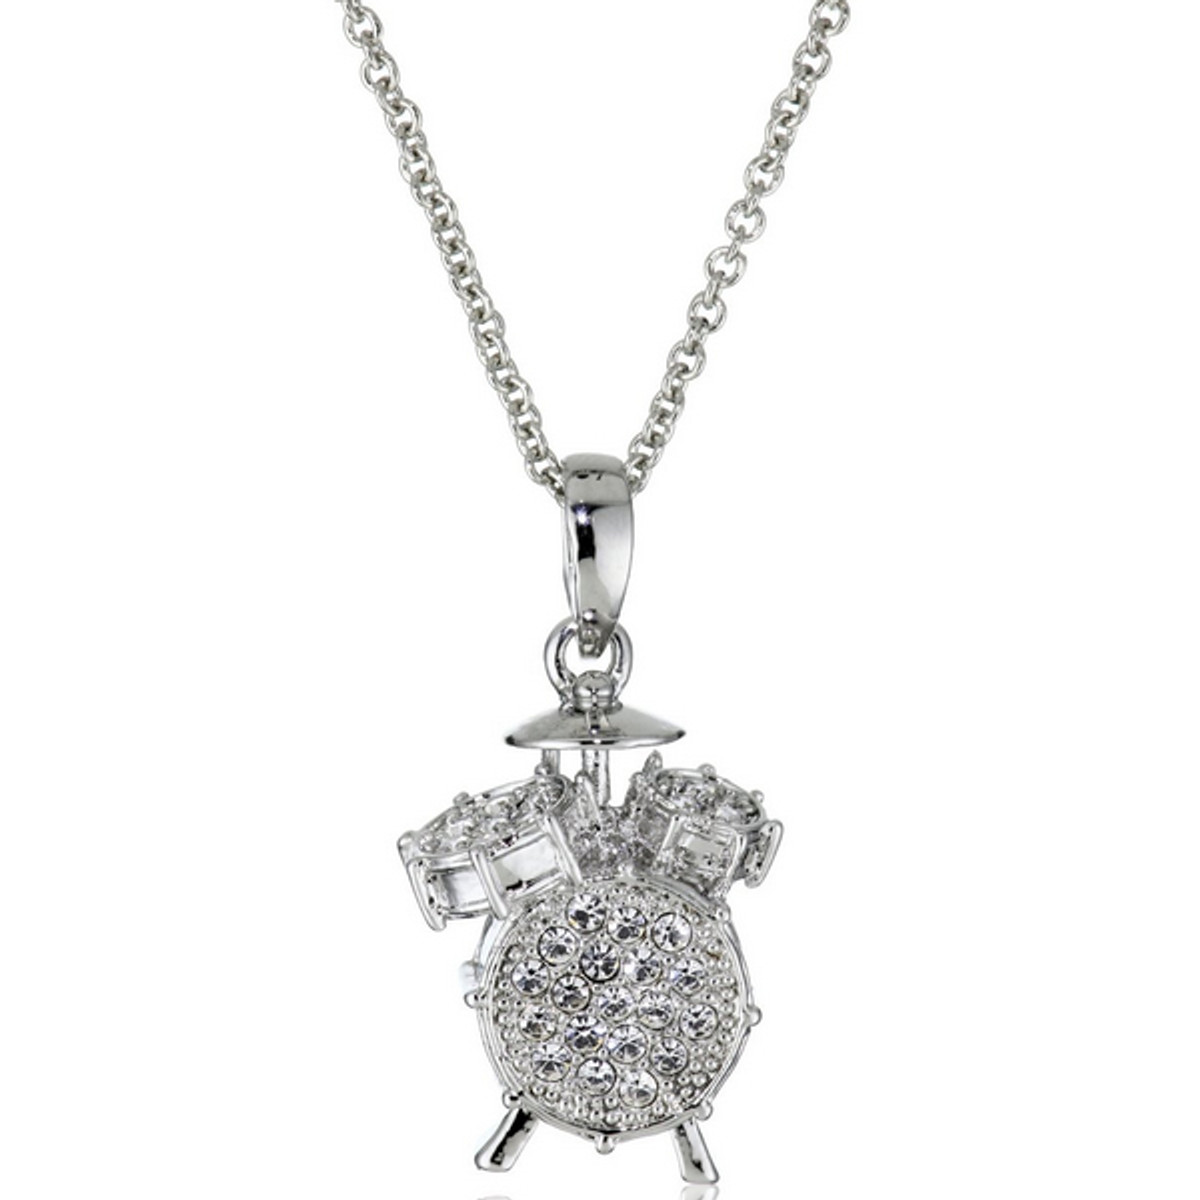 Hamilton Crawford Jewelry Drum Set Necklace Silver Necklace